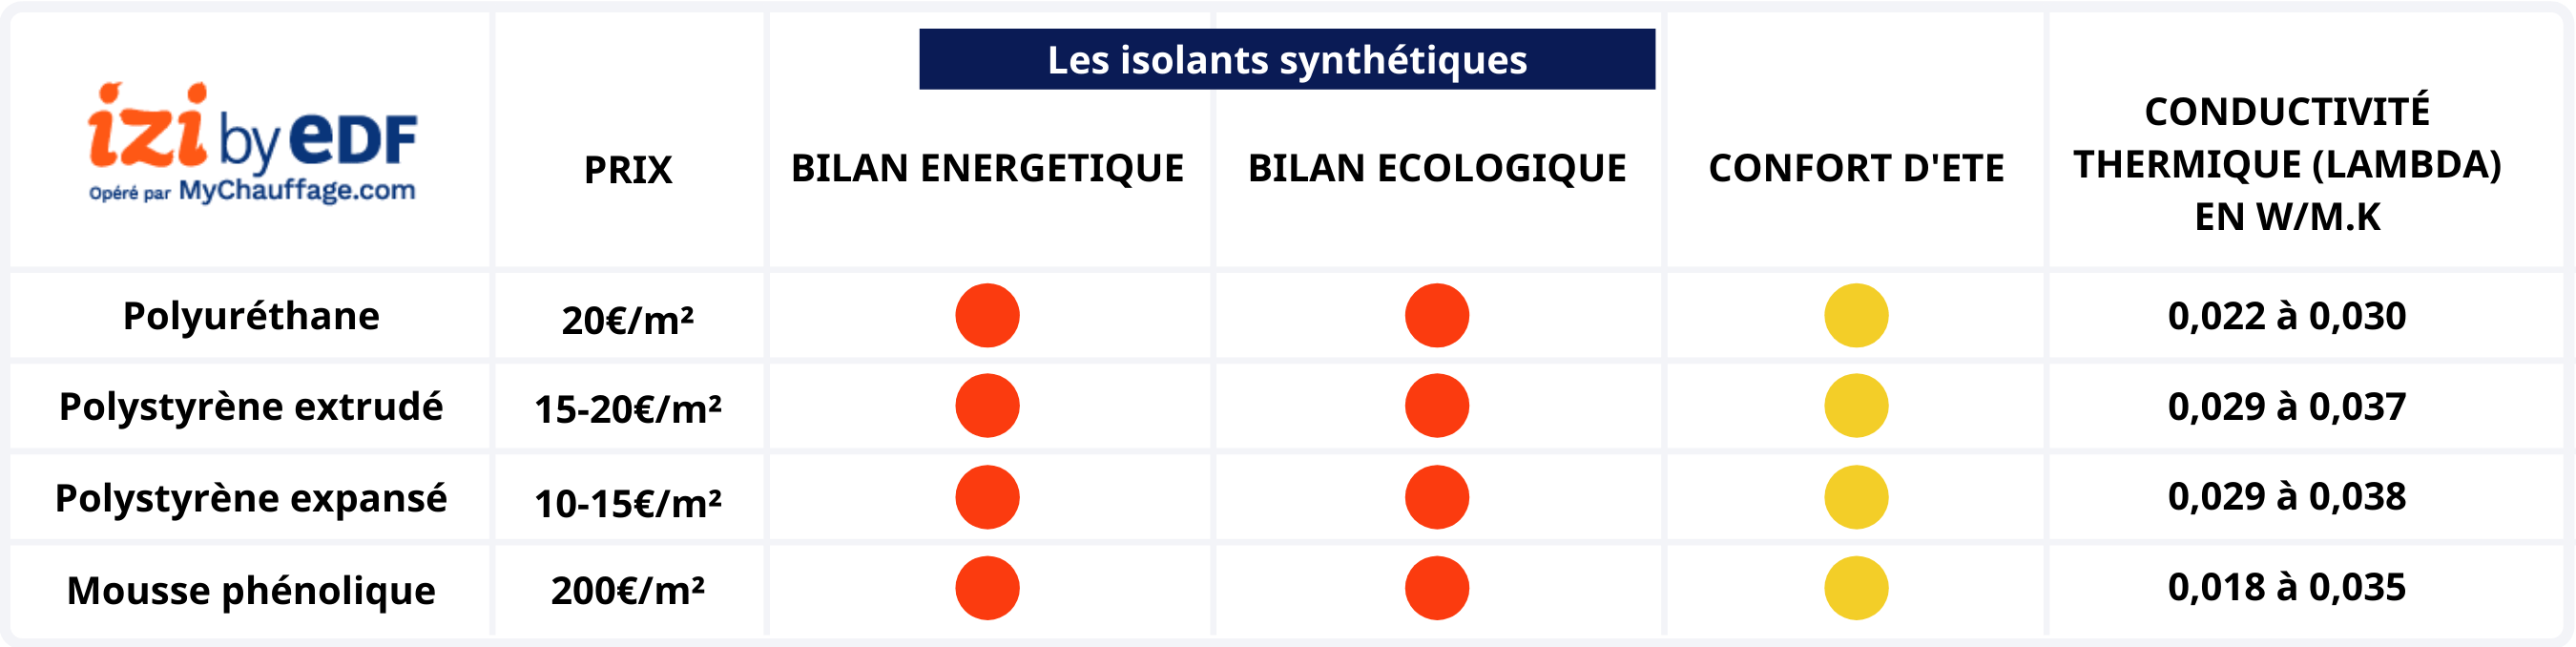 Comparatif isolants synthétiques